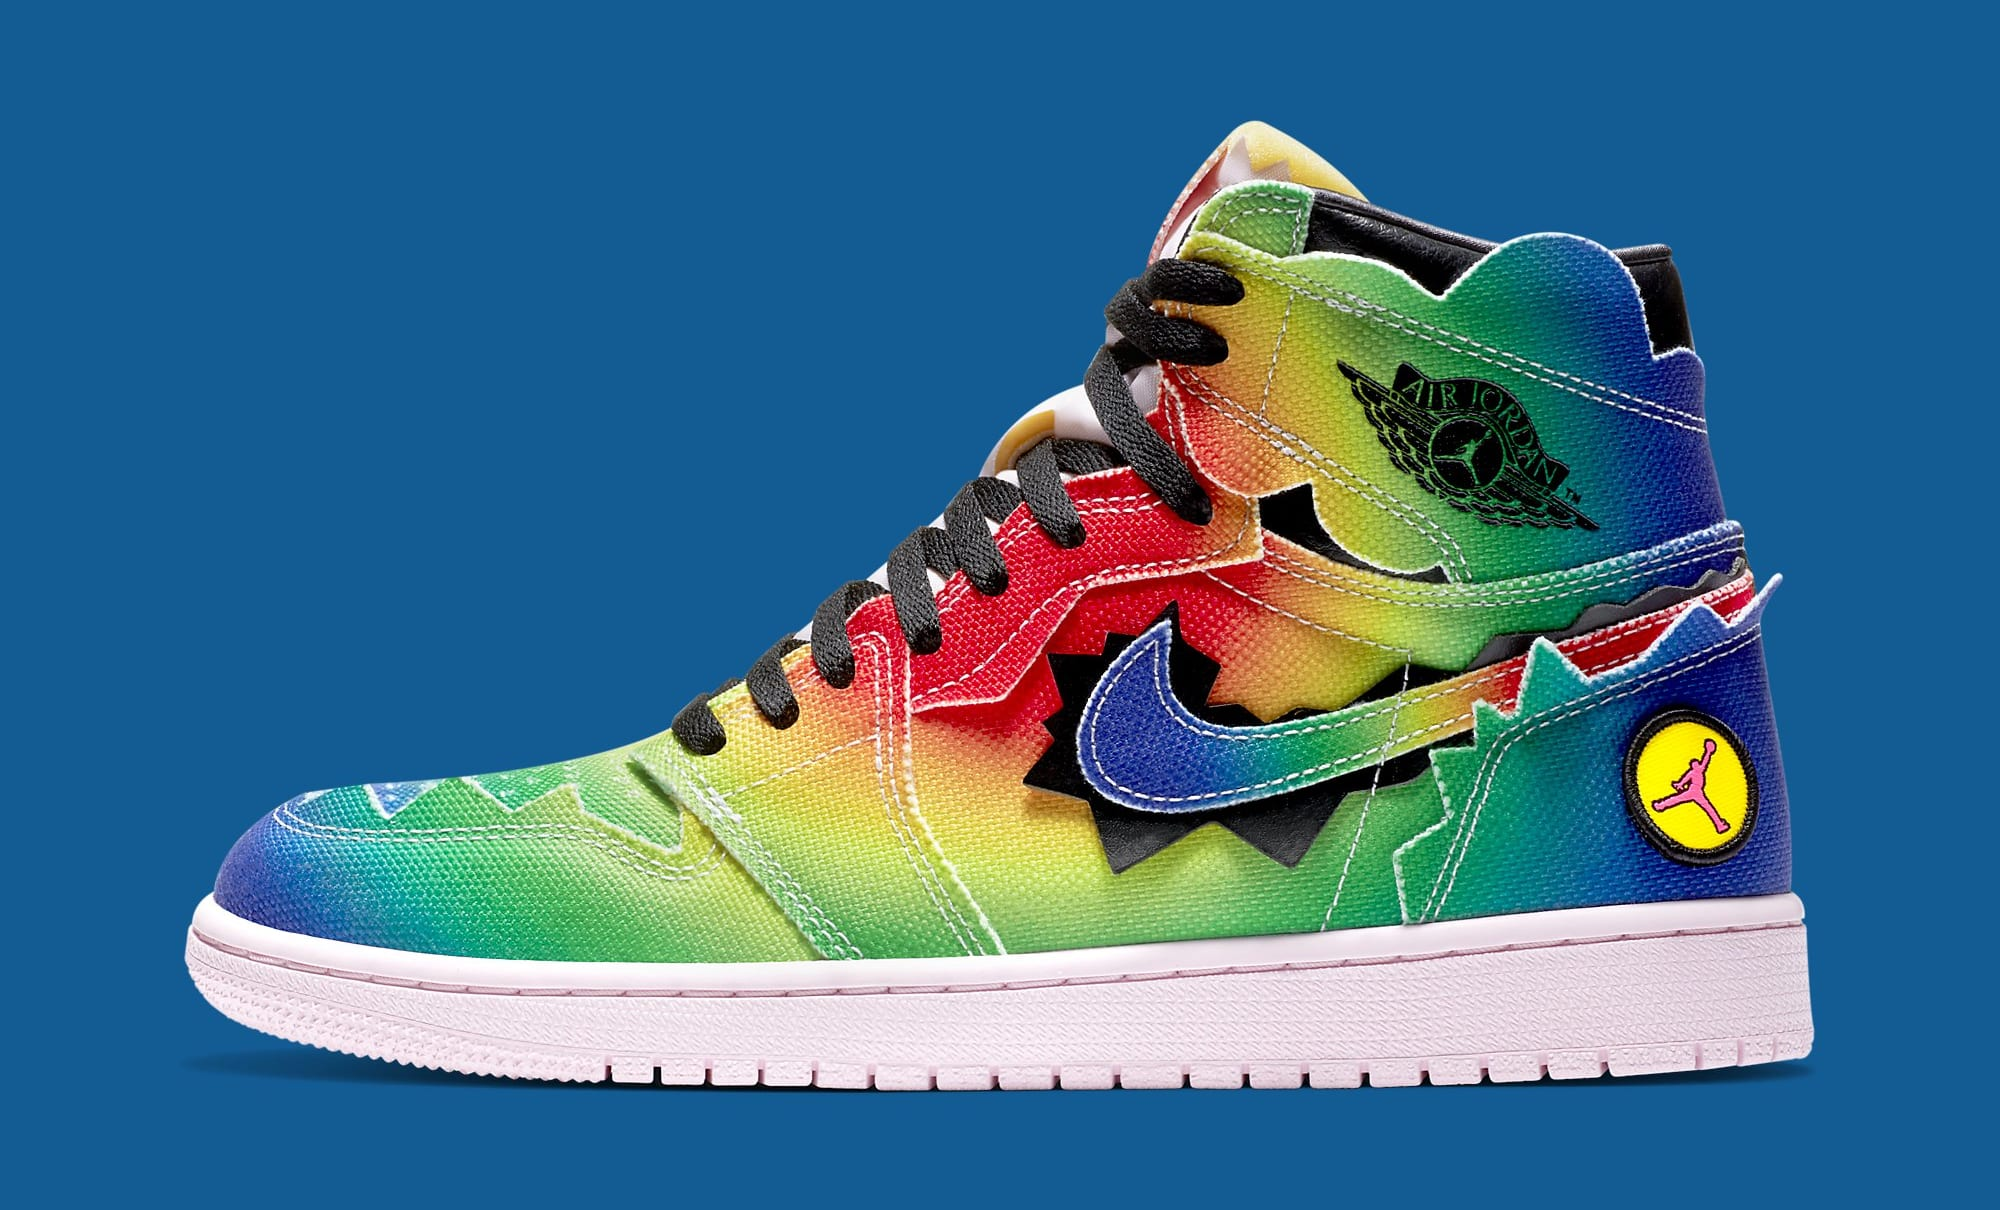 J Balvin x Air Jordan 1 High DC3481-900 Lateral